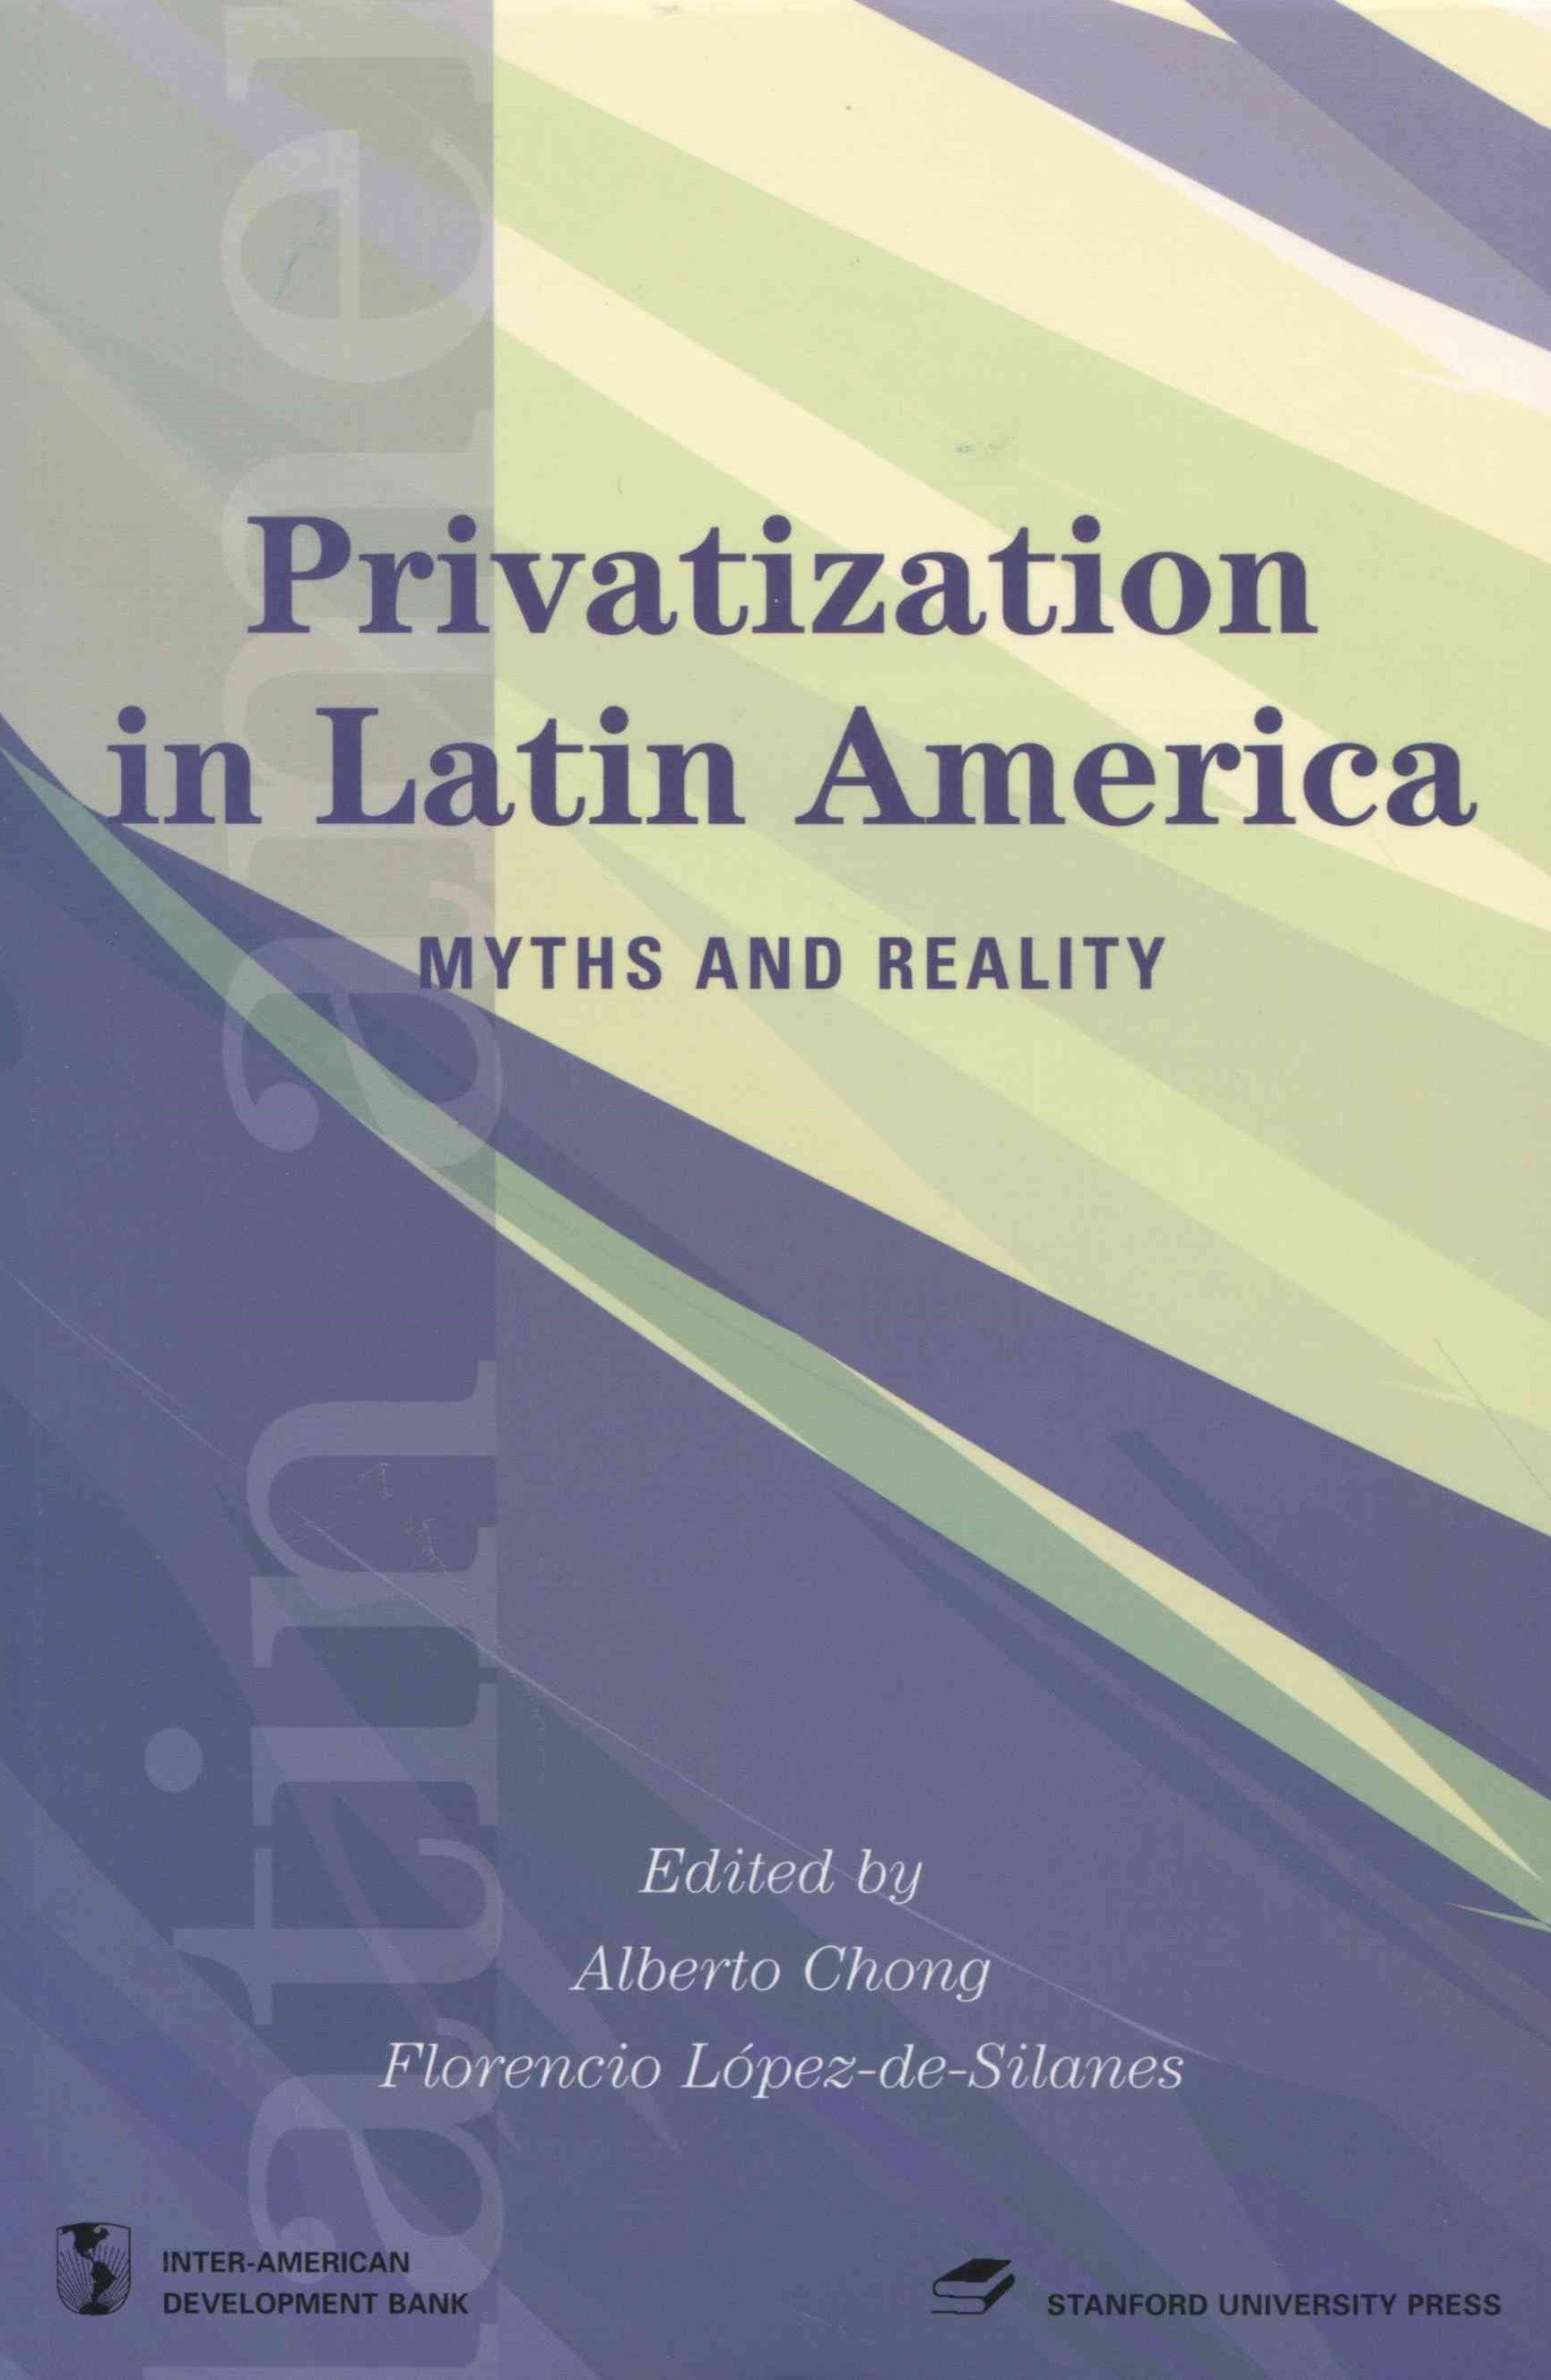 Privatization in Latin America